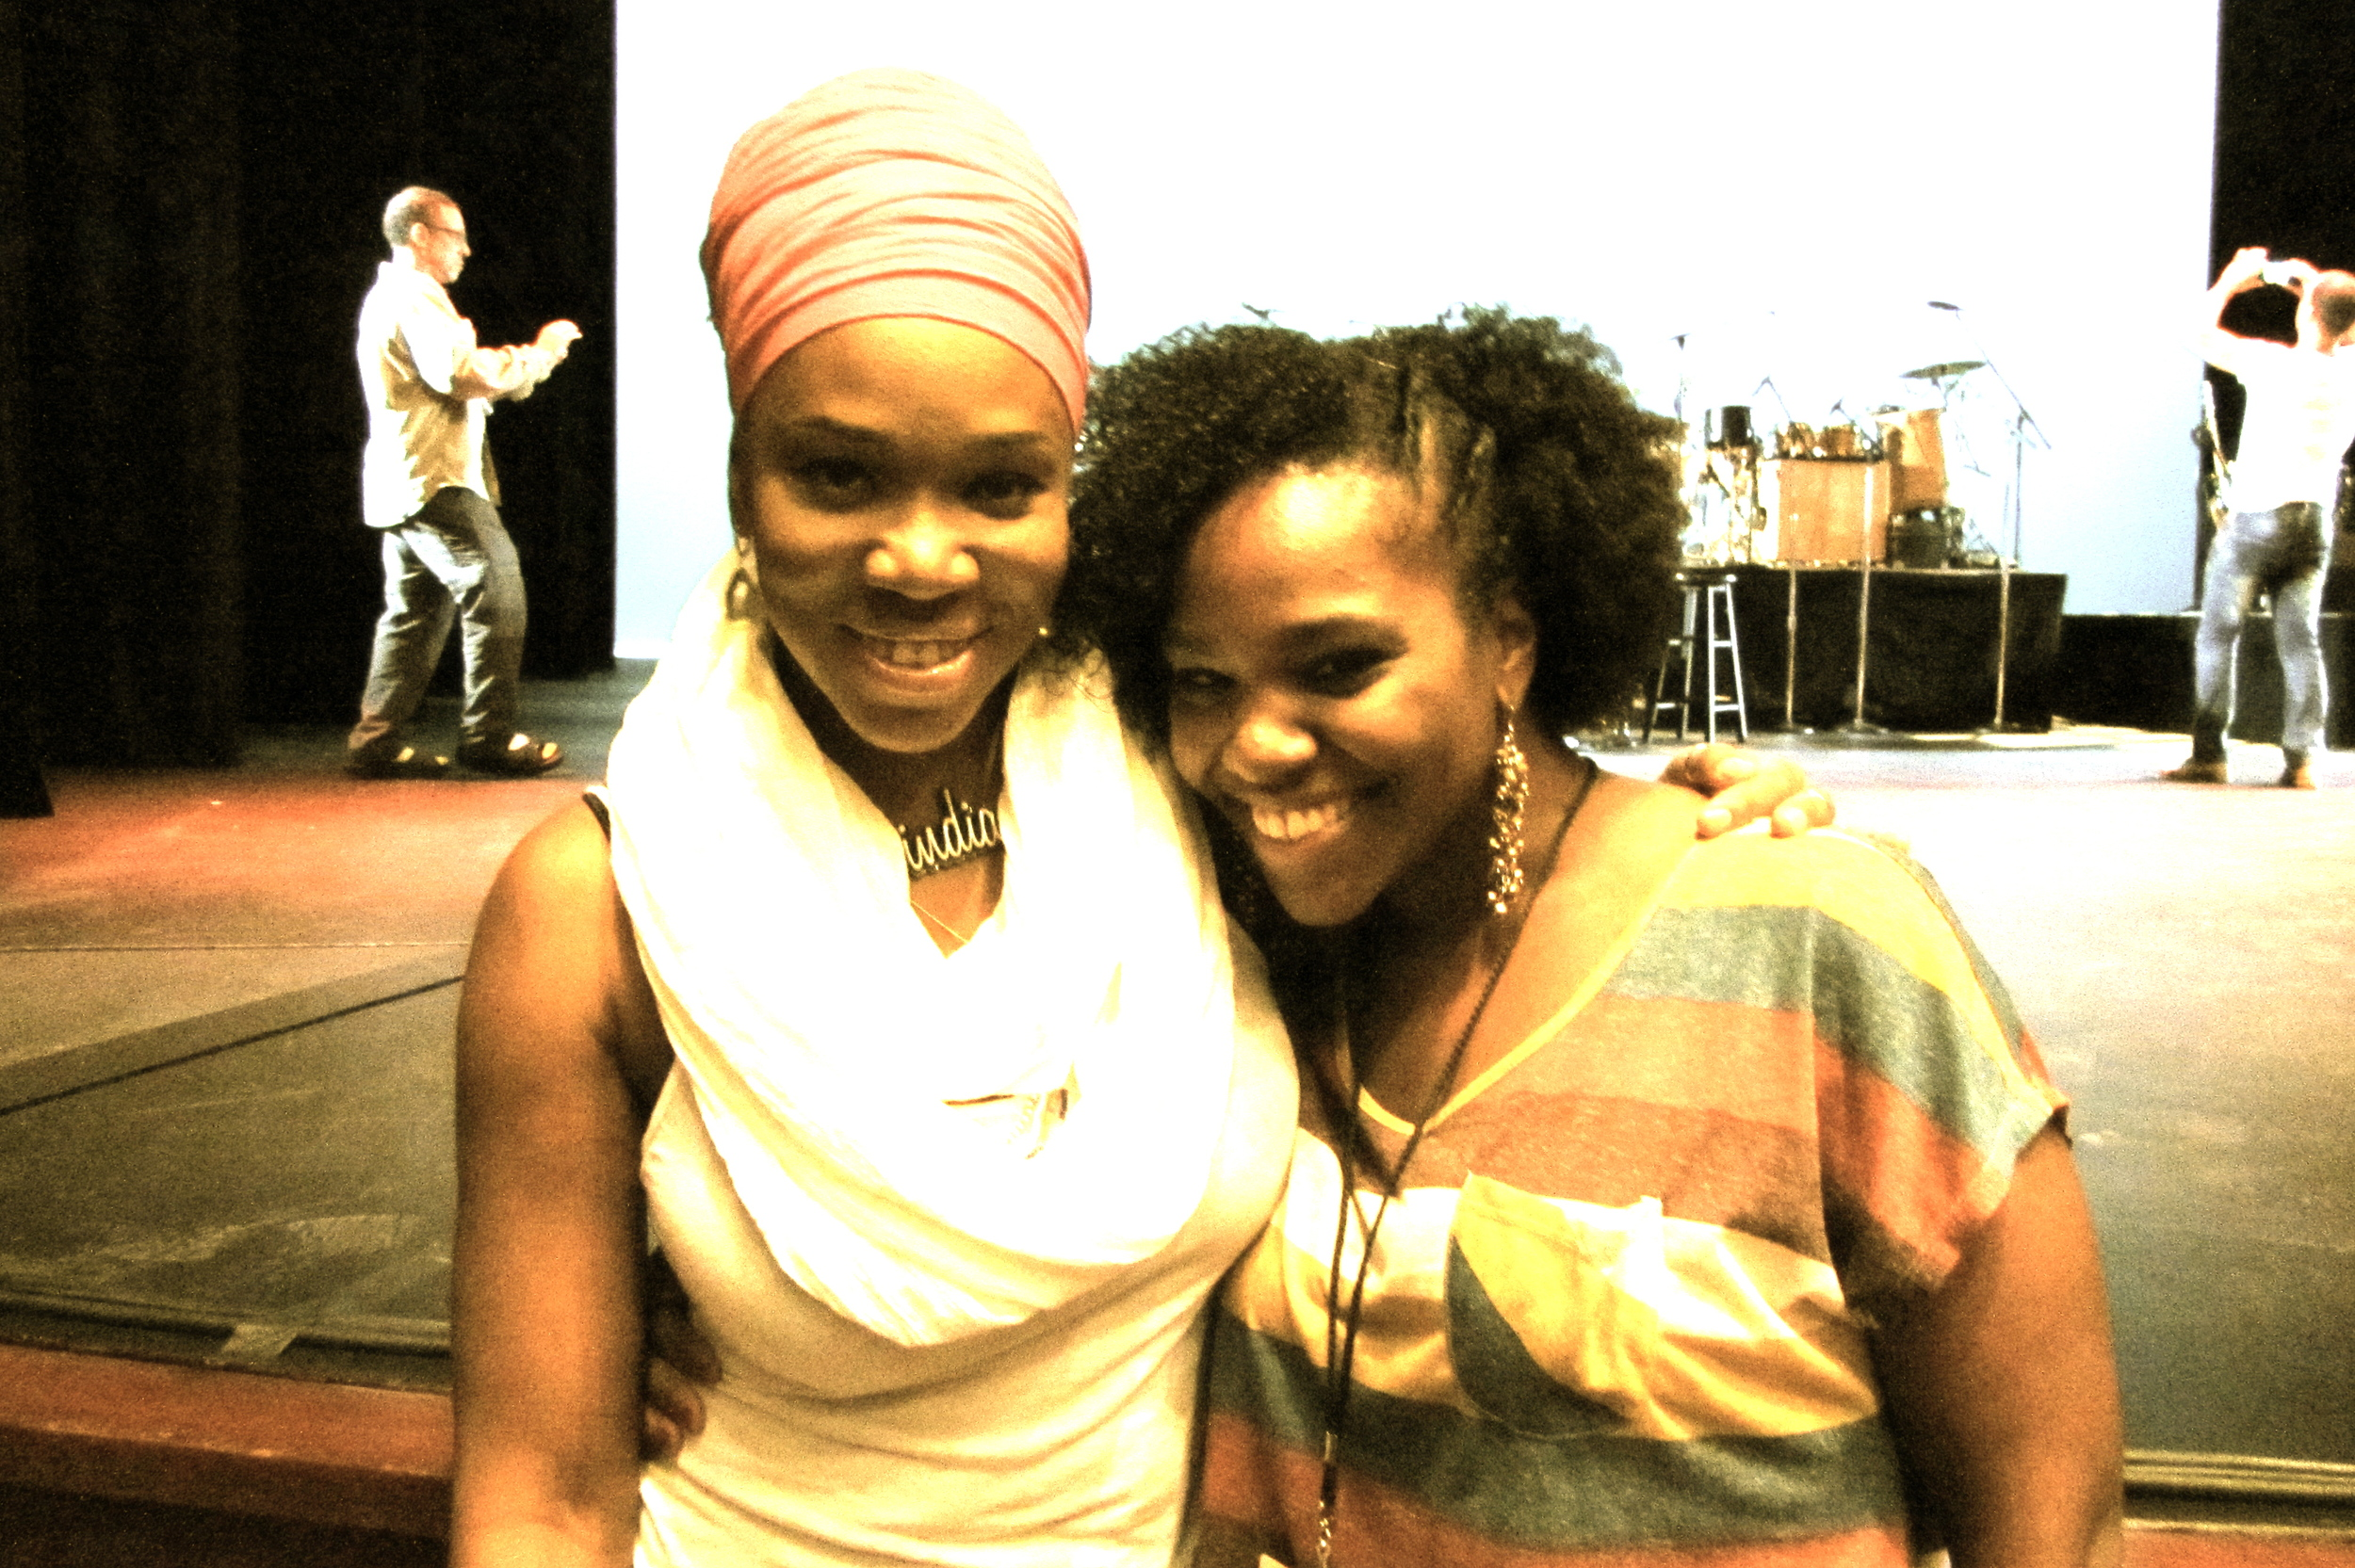 huge inspiration....India Arie.